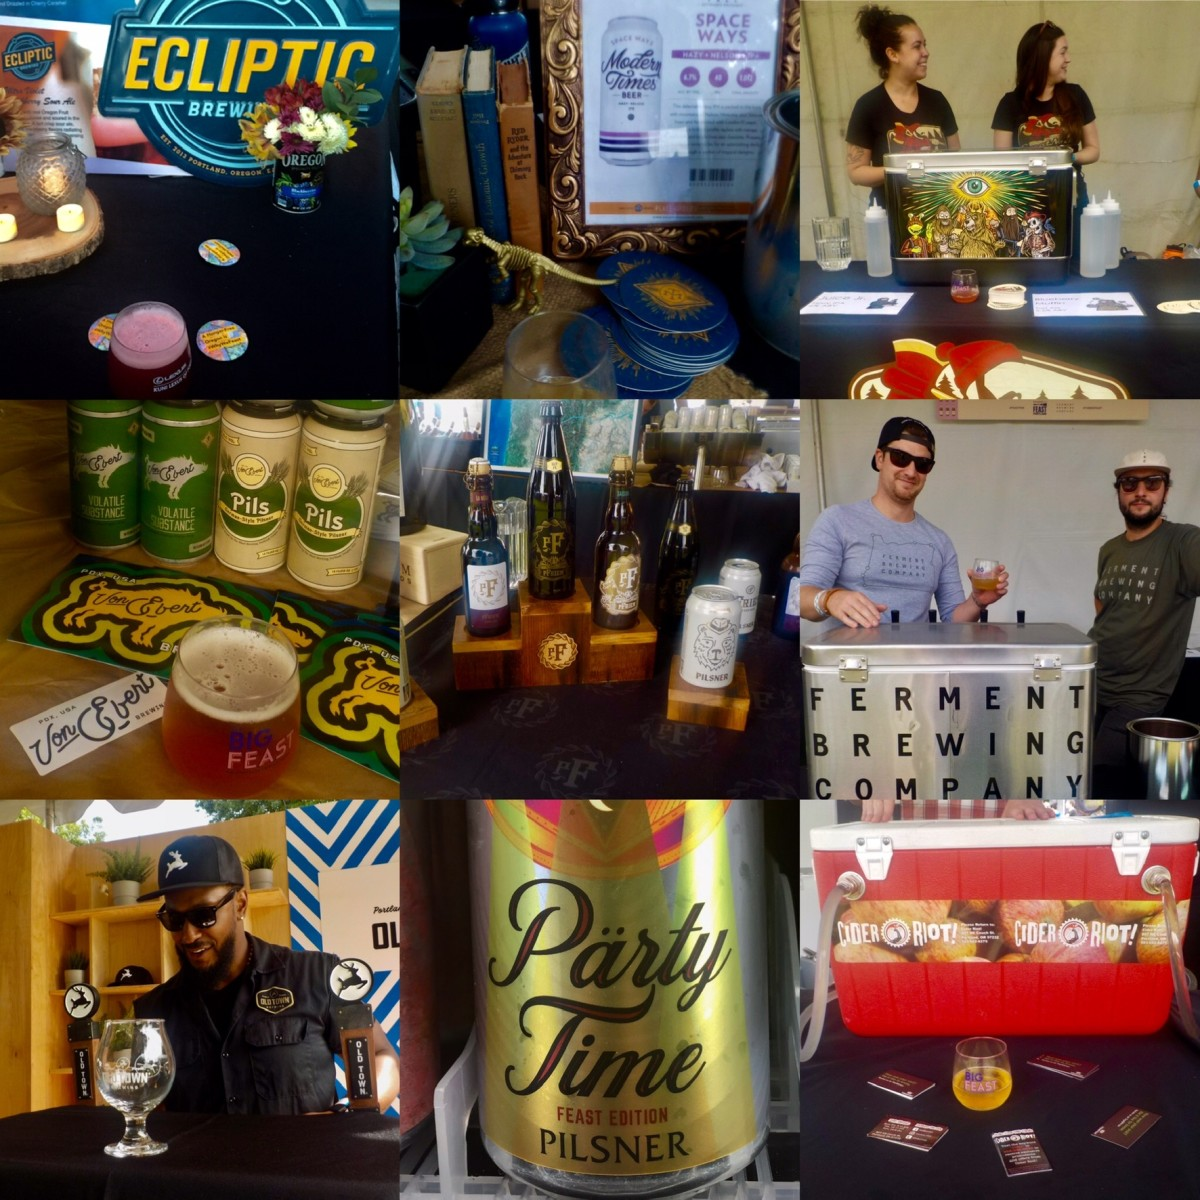 Feast Portland: Ecliptic Brewing, Modern Times Beer, Great Notion Brewing, Von Ebert Brewing, pFiem Family Brewers, Ferment Brewing, Old Town Brewing, Wayfinder Beer, Cider Riot